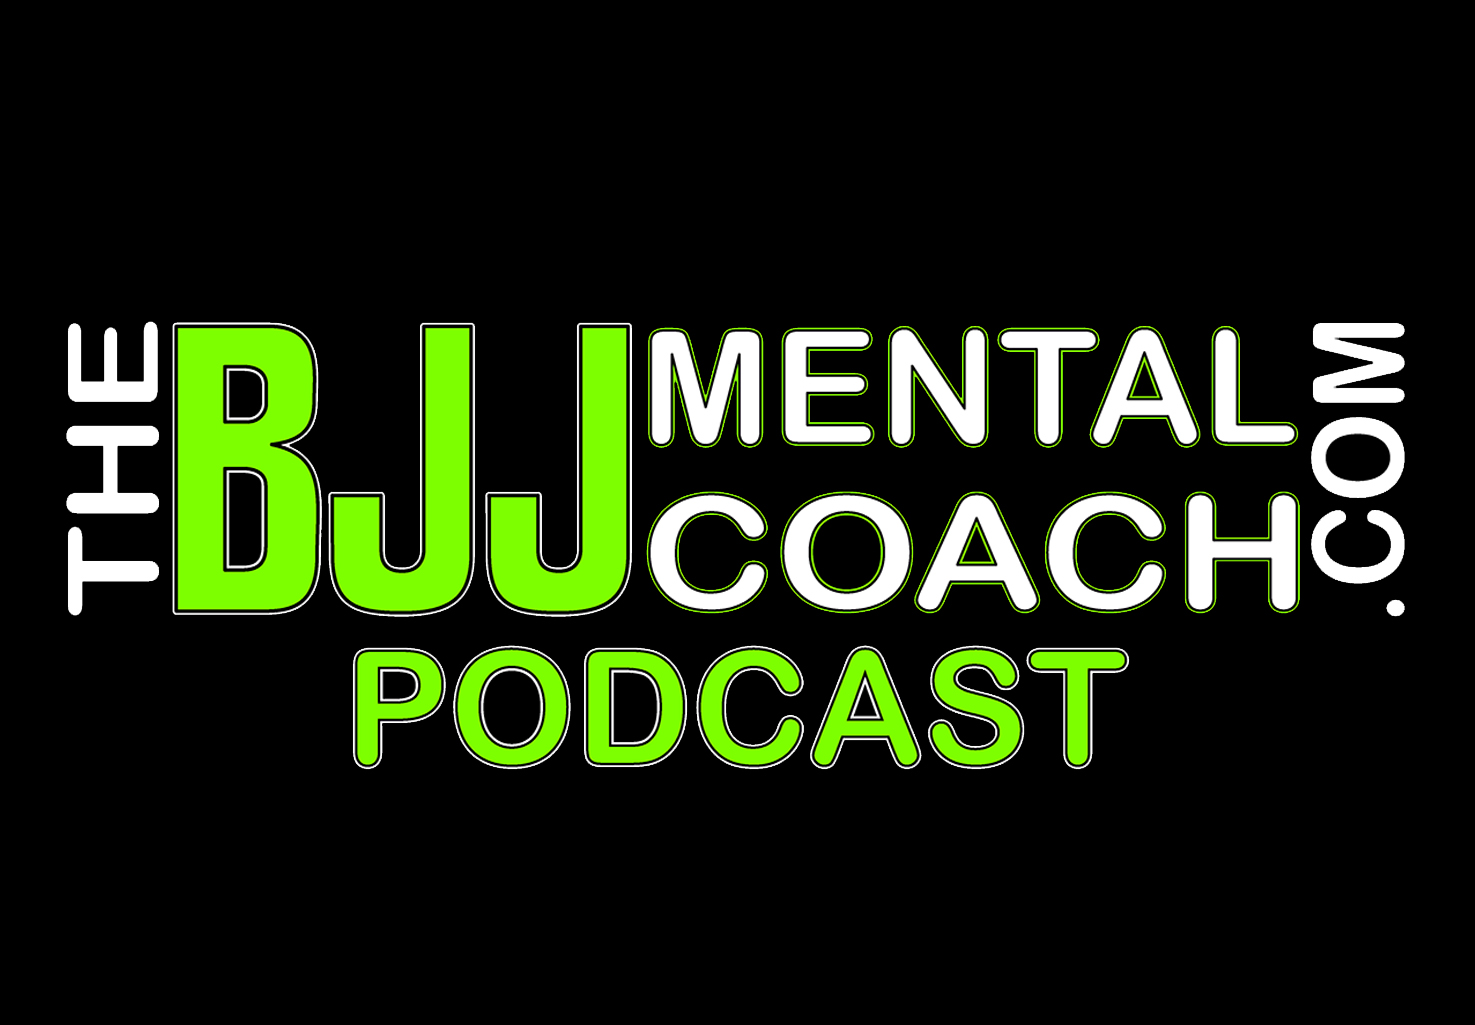 The BJJ Mental Coach Podcast